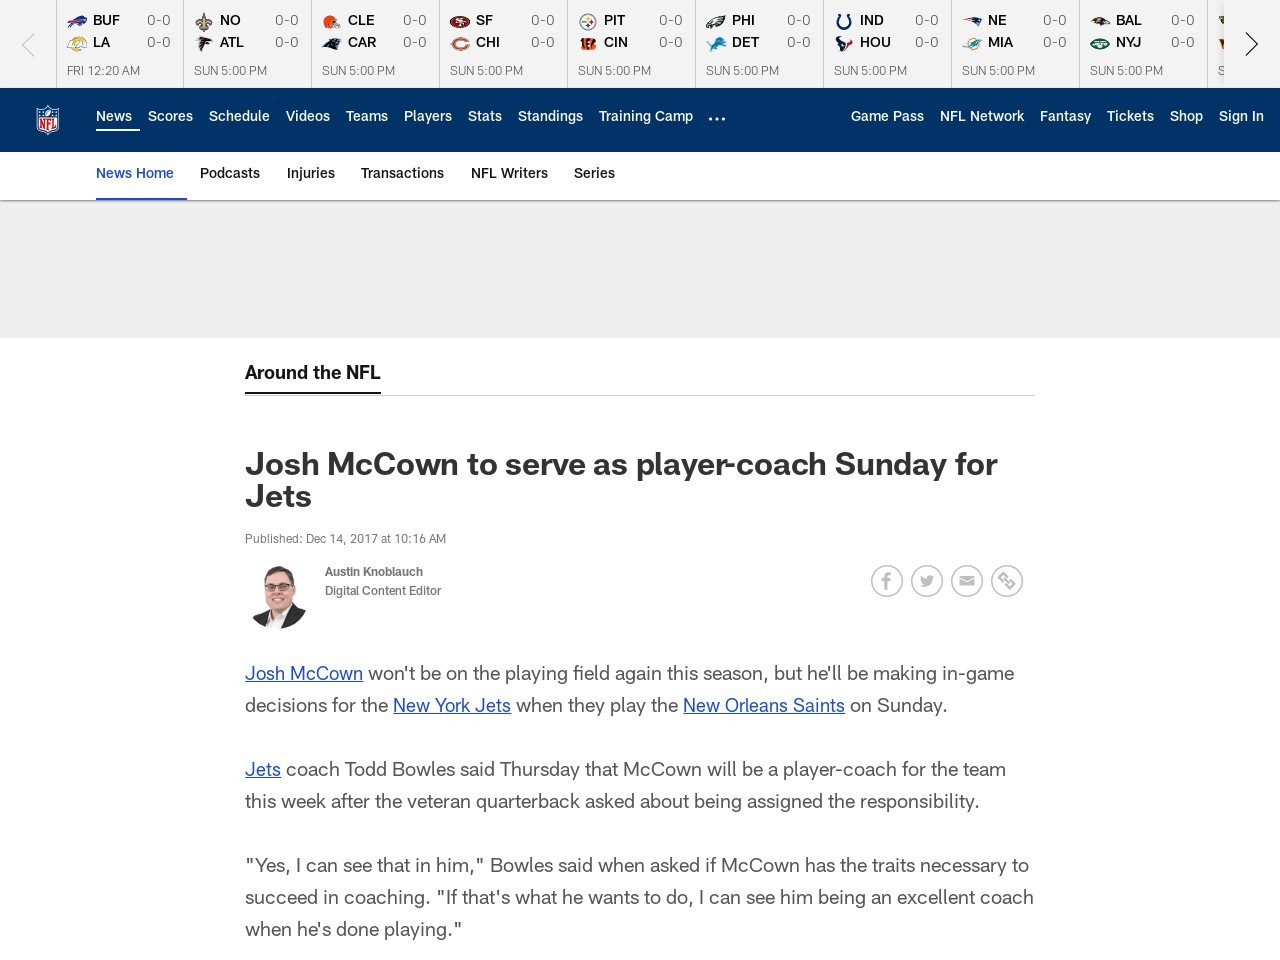 Josh McCown to serve as player-coach Sunday for Jets